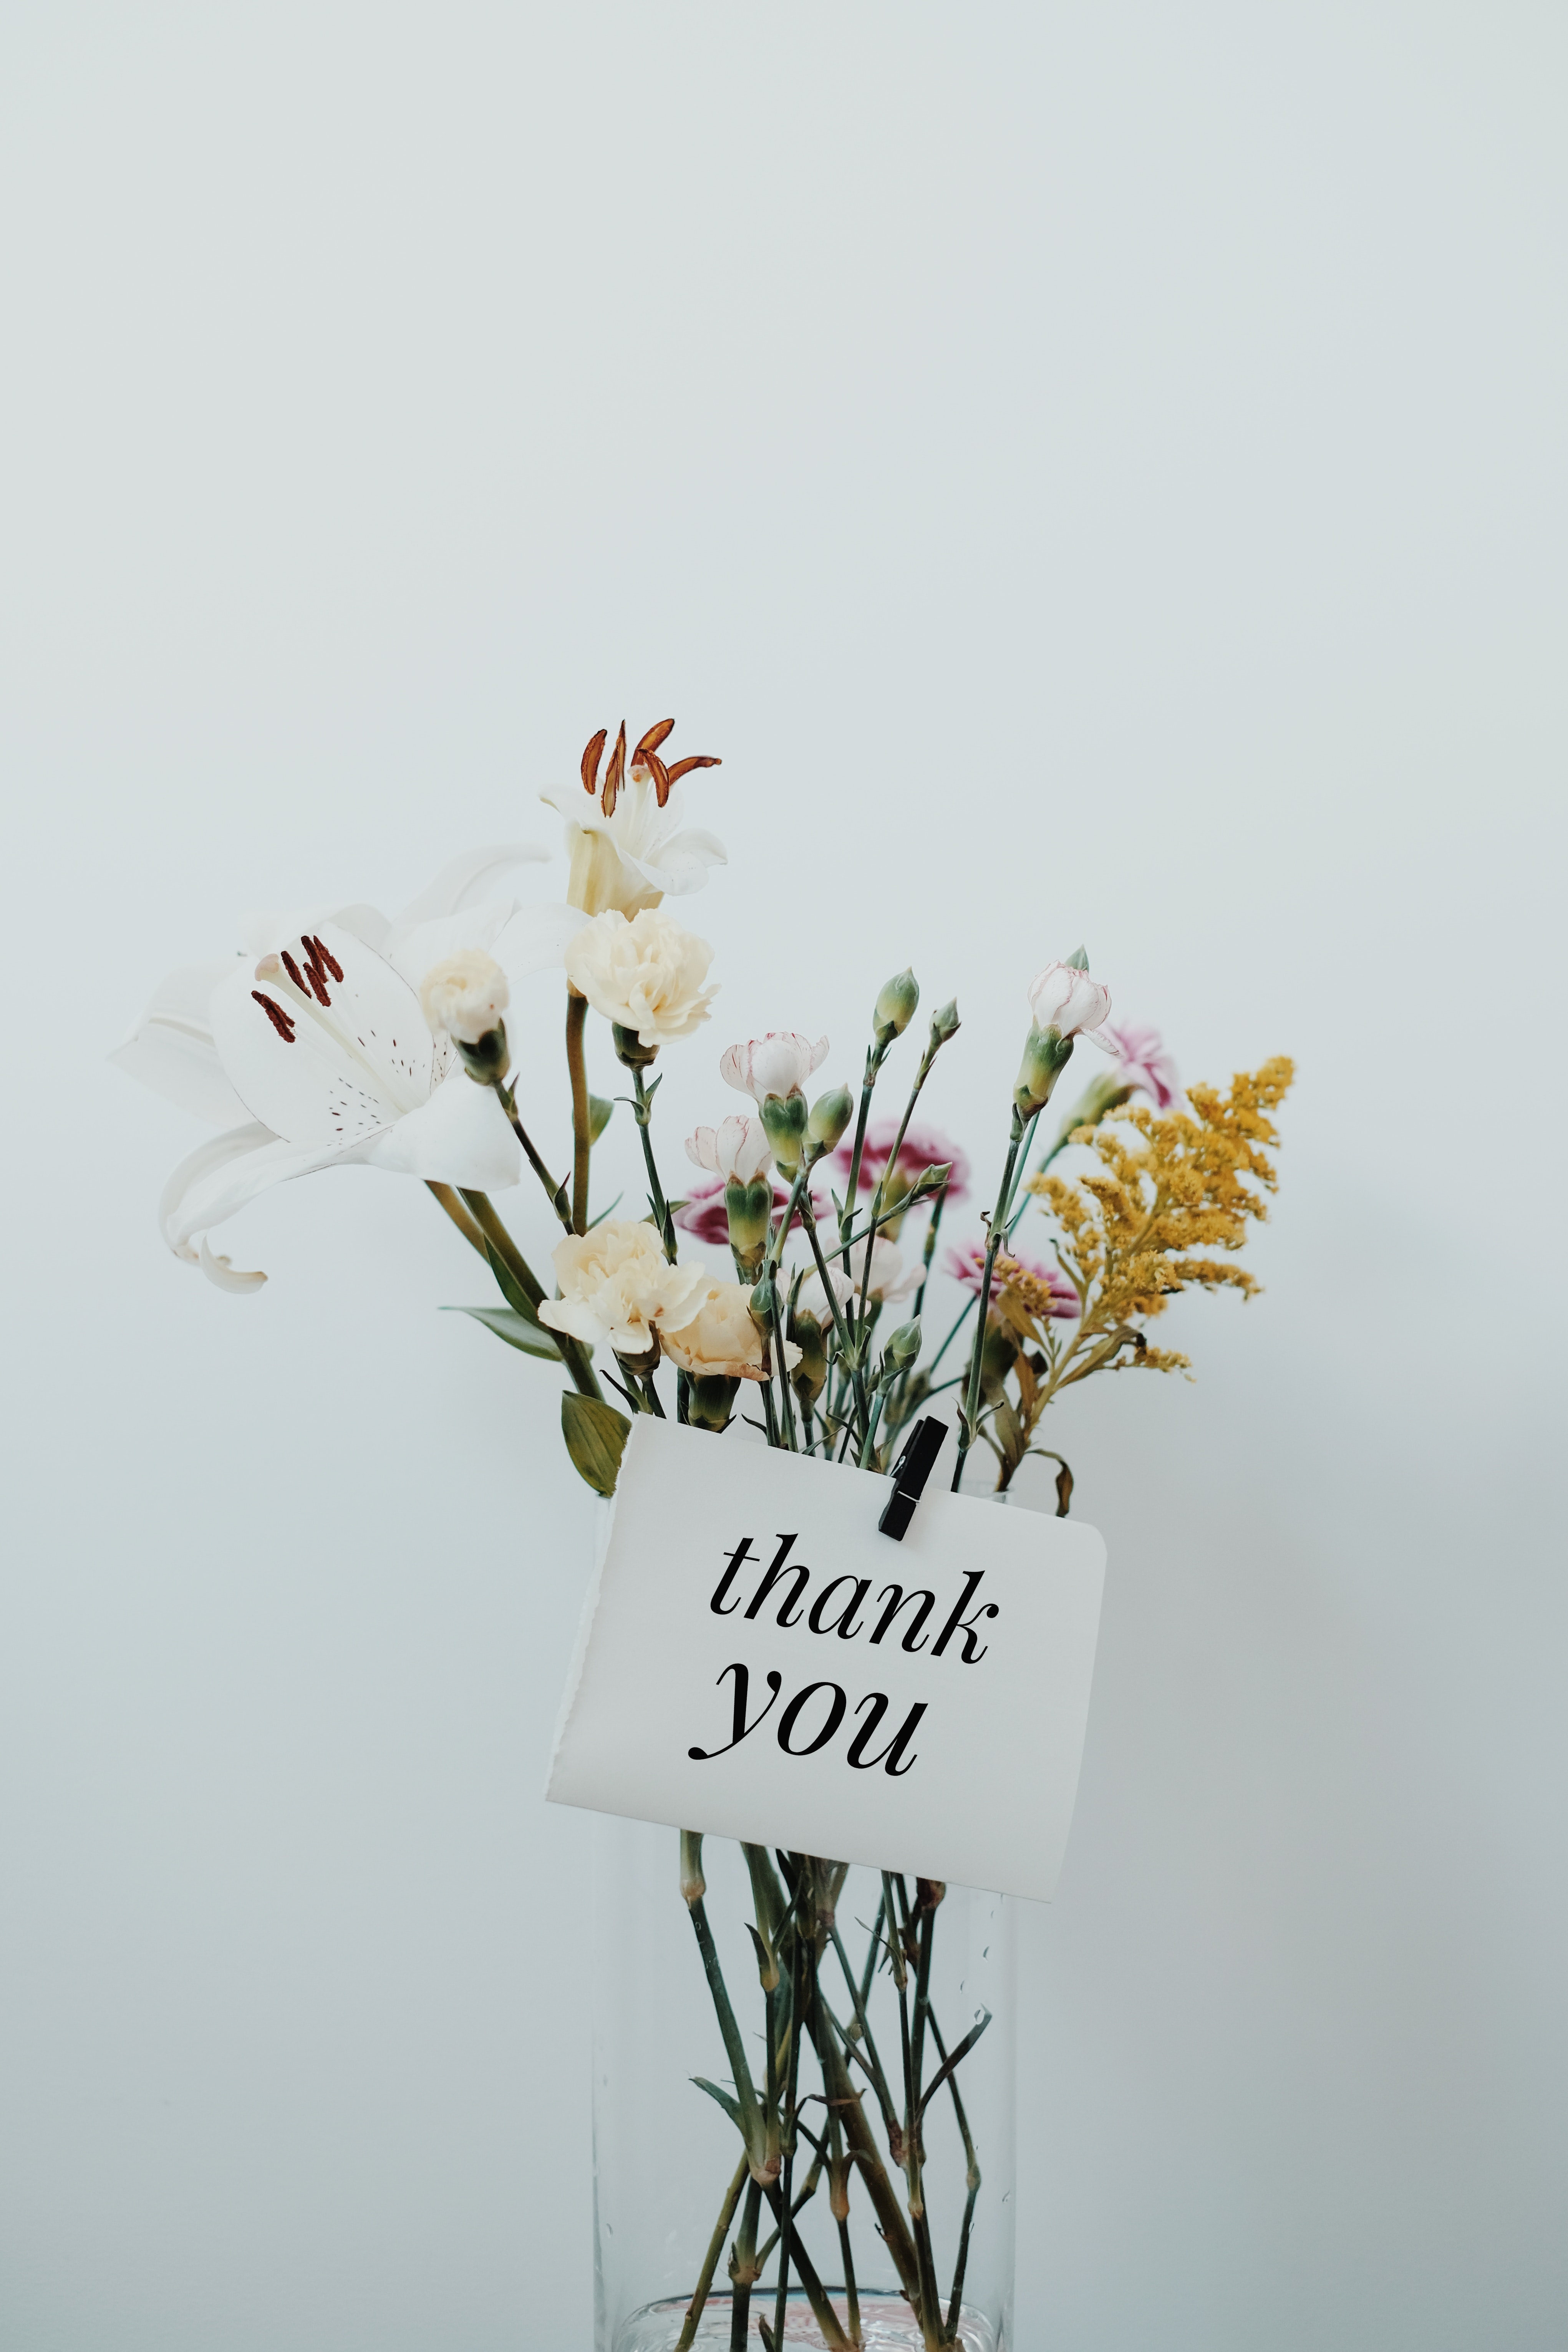 wildflowers in vase with thank you note